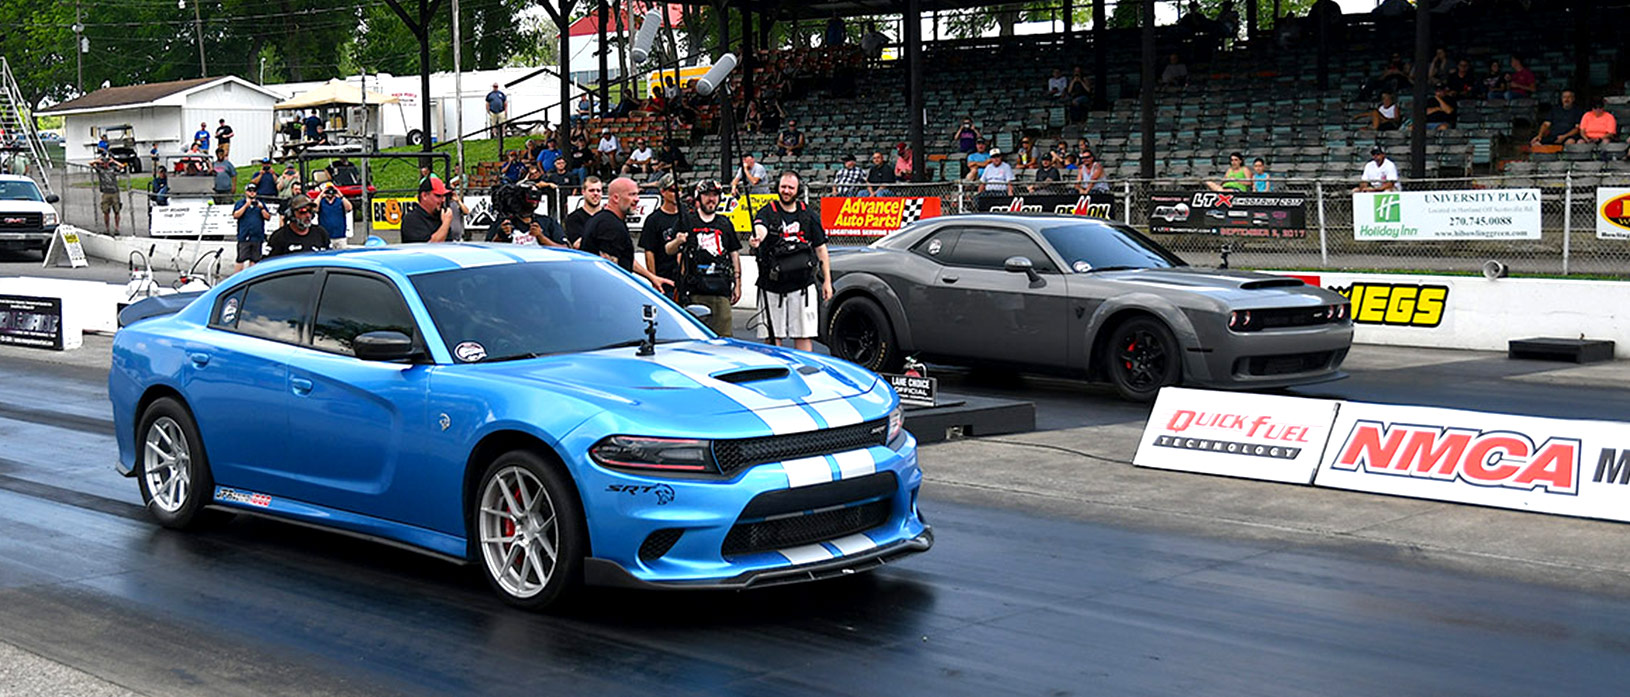 Gray Demon lining up against blue Hellcat